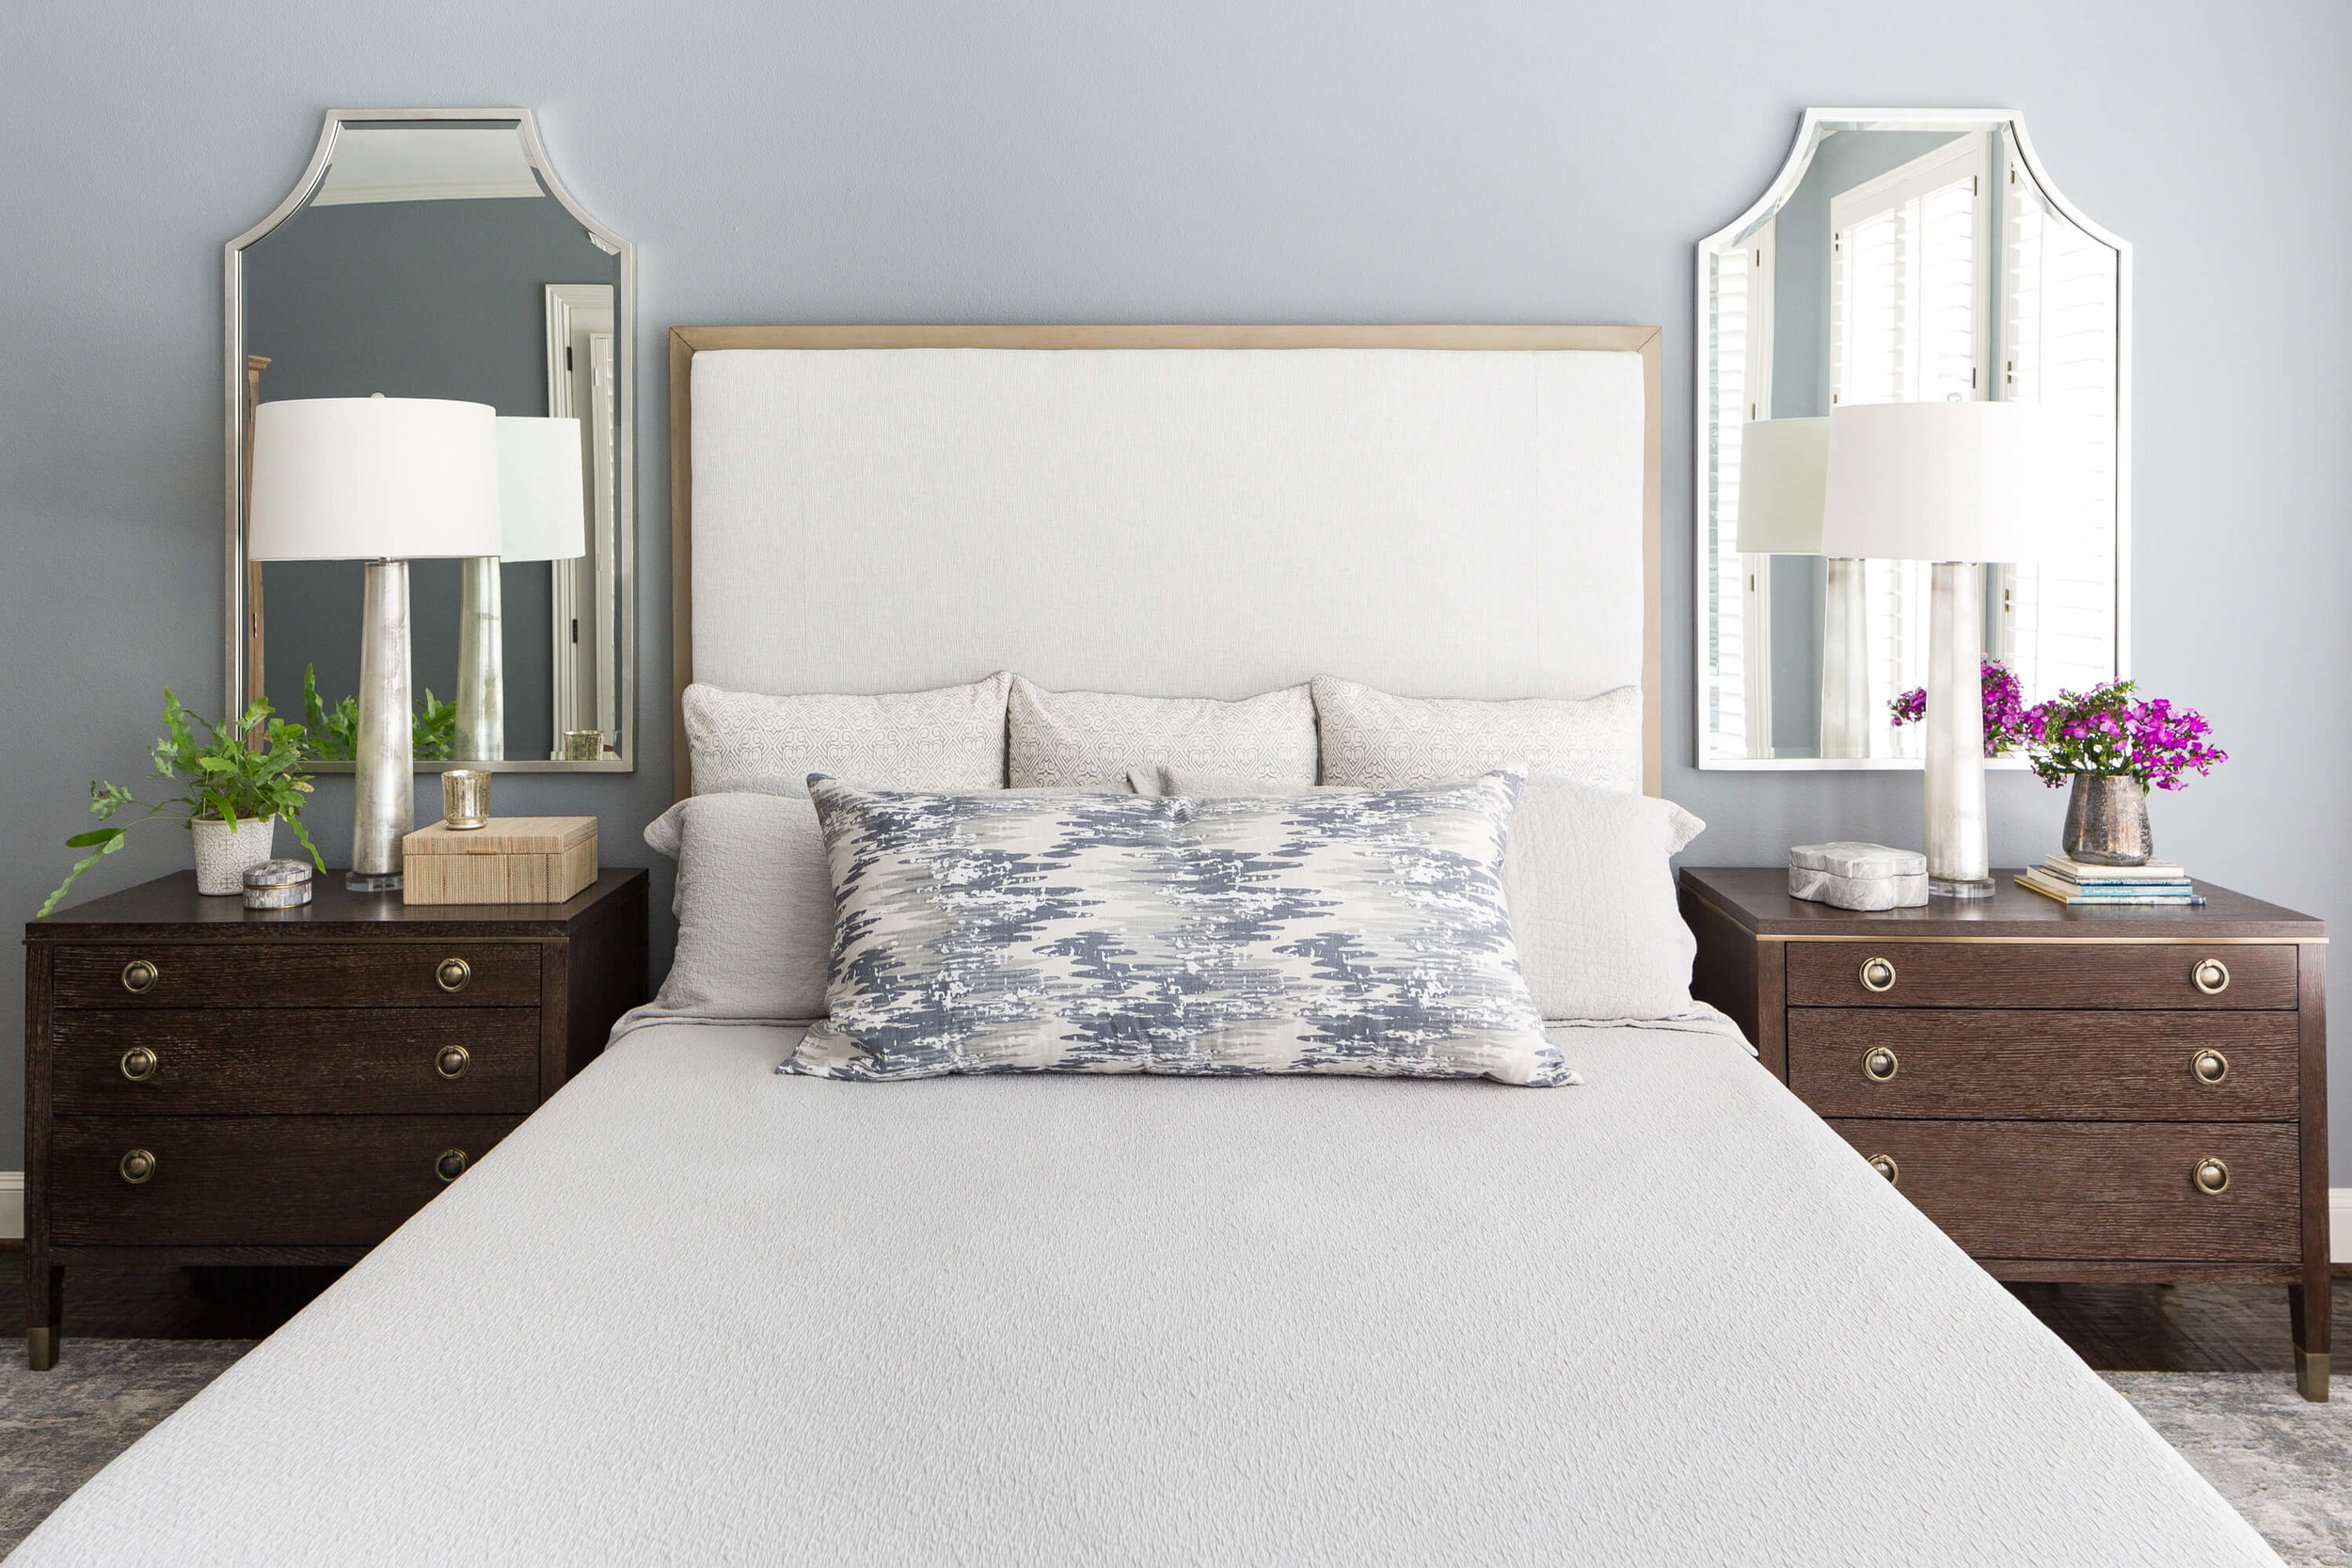 PROJECT REVEAL - A Soothing Master Bedroom And Striking ...